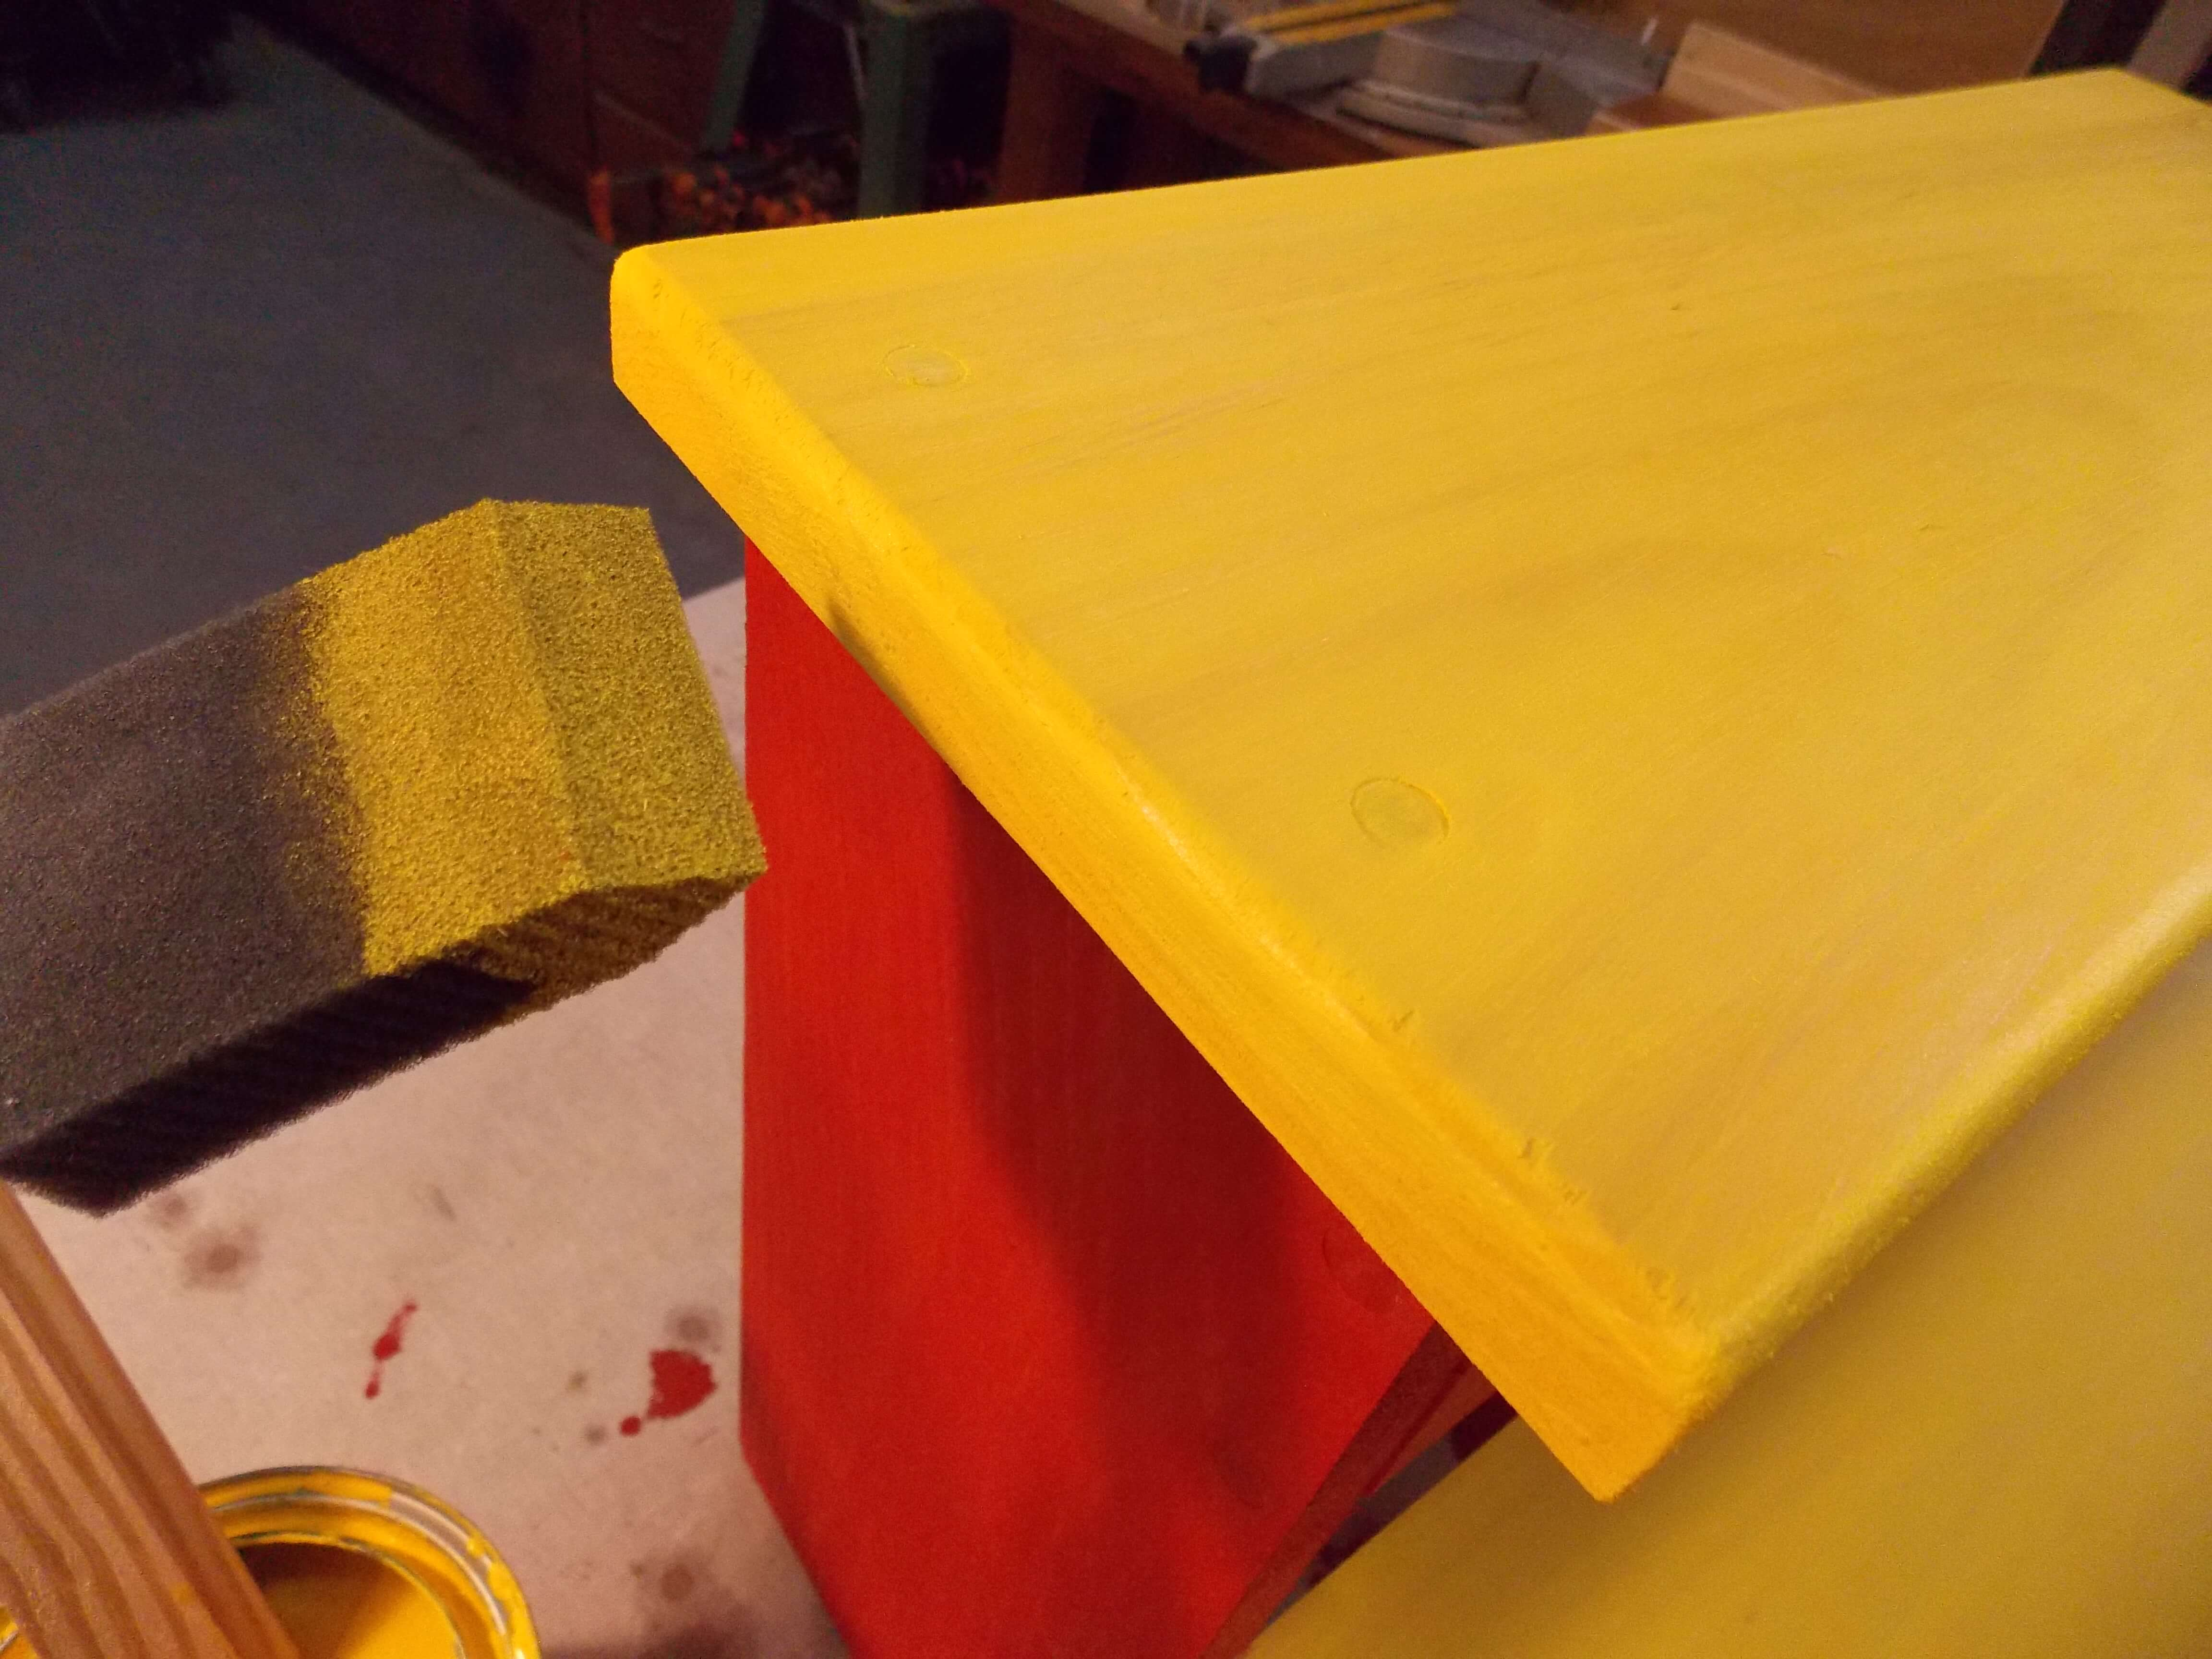 Minwax Water Based Wood Stain in Mustard Applied to Step Stool